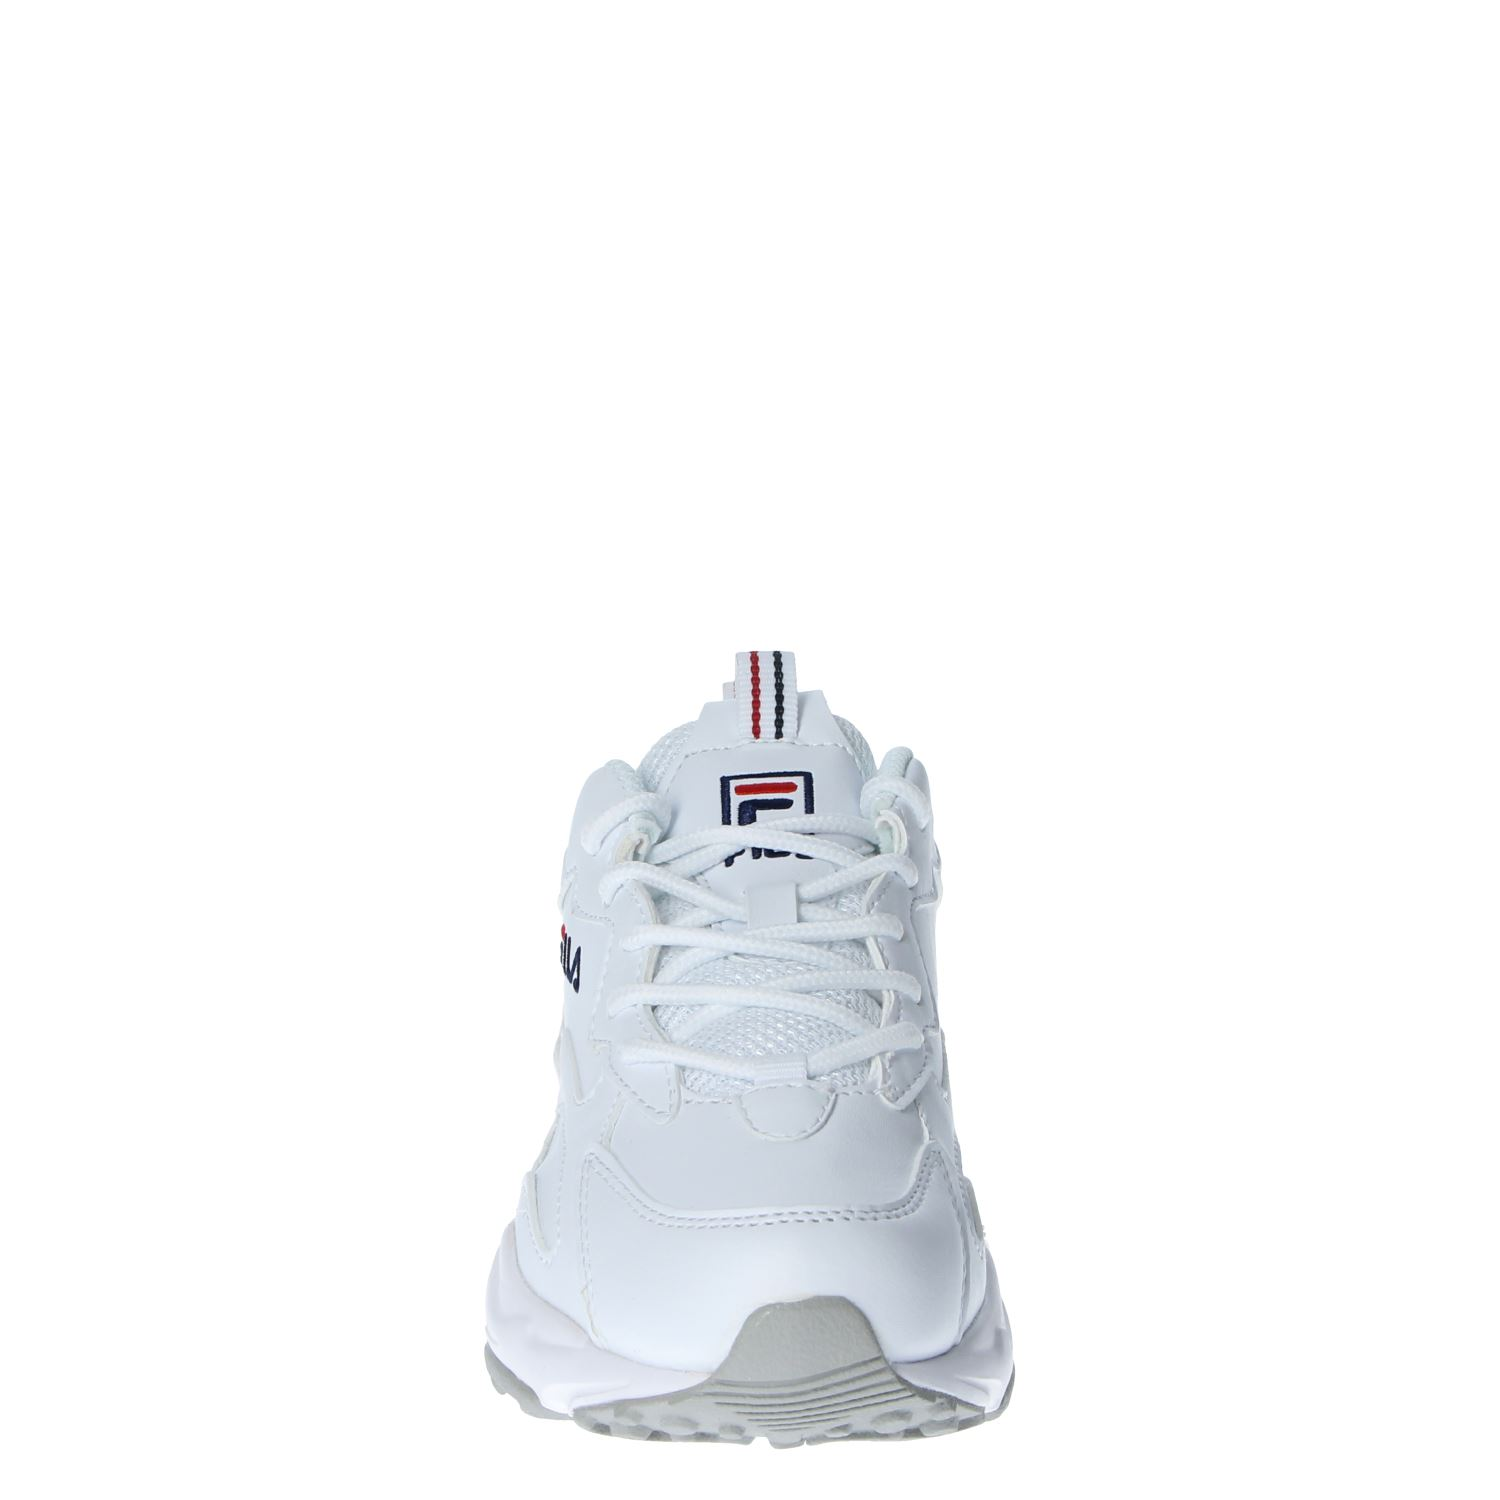 Fila Ray Tracer Low dames dad sneakers wit